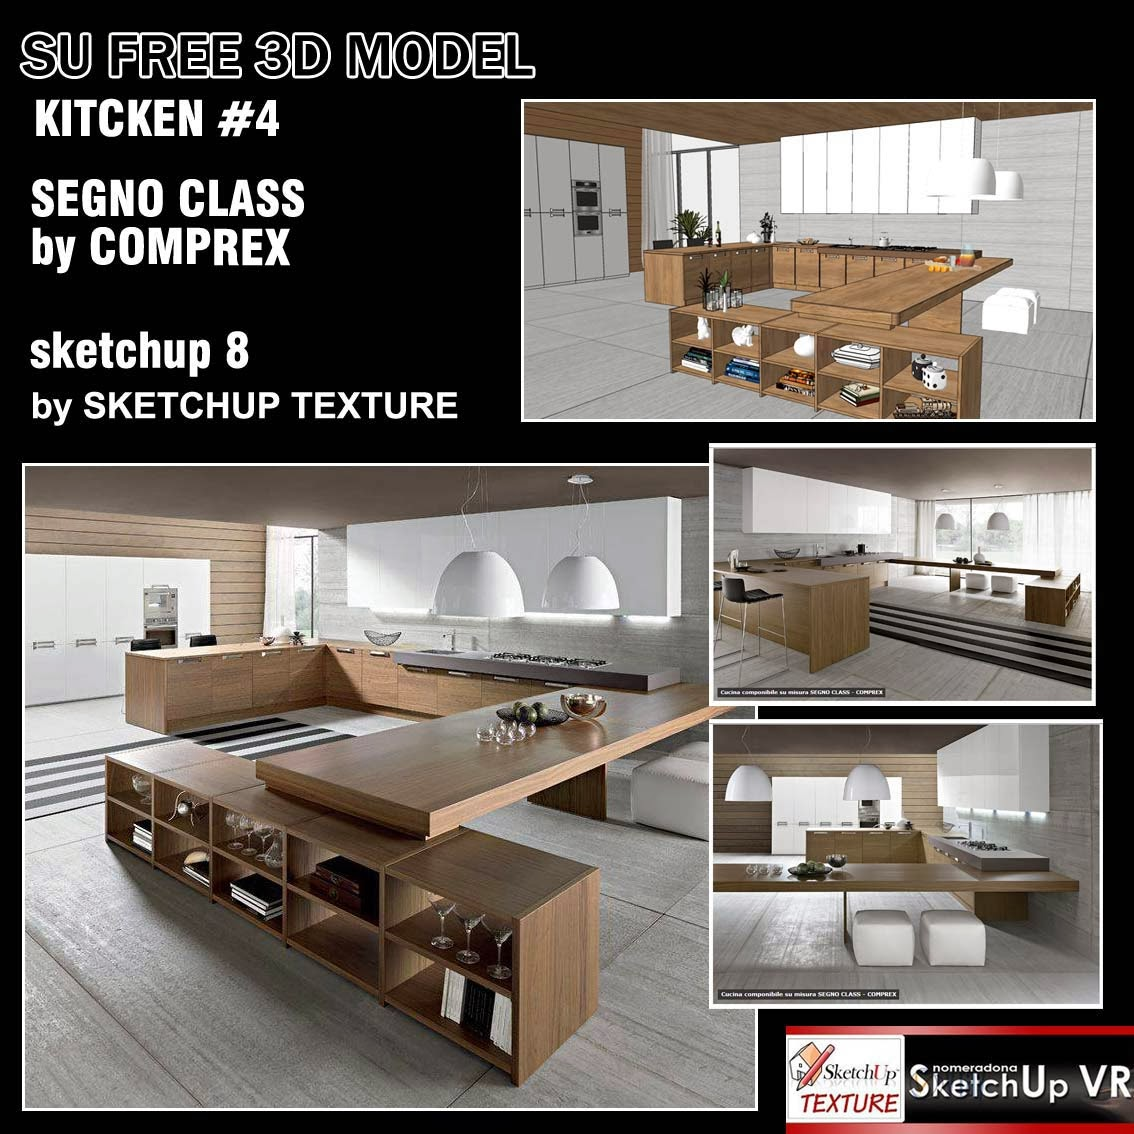 It. SKETCHUP TEXTURE  FREE SKETCHUP 3D MODEL KITCHEN DESIGN